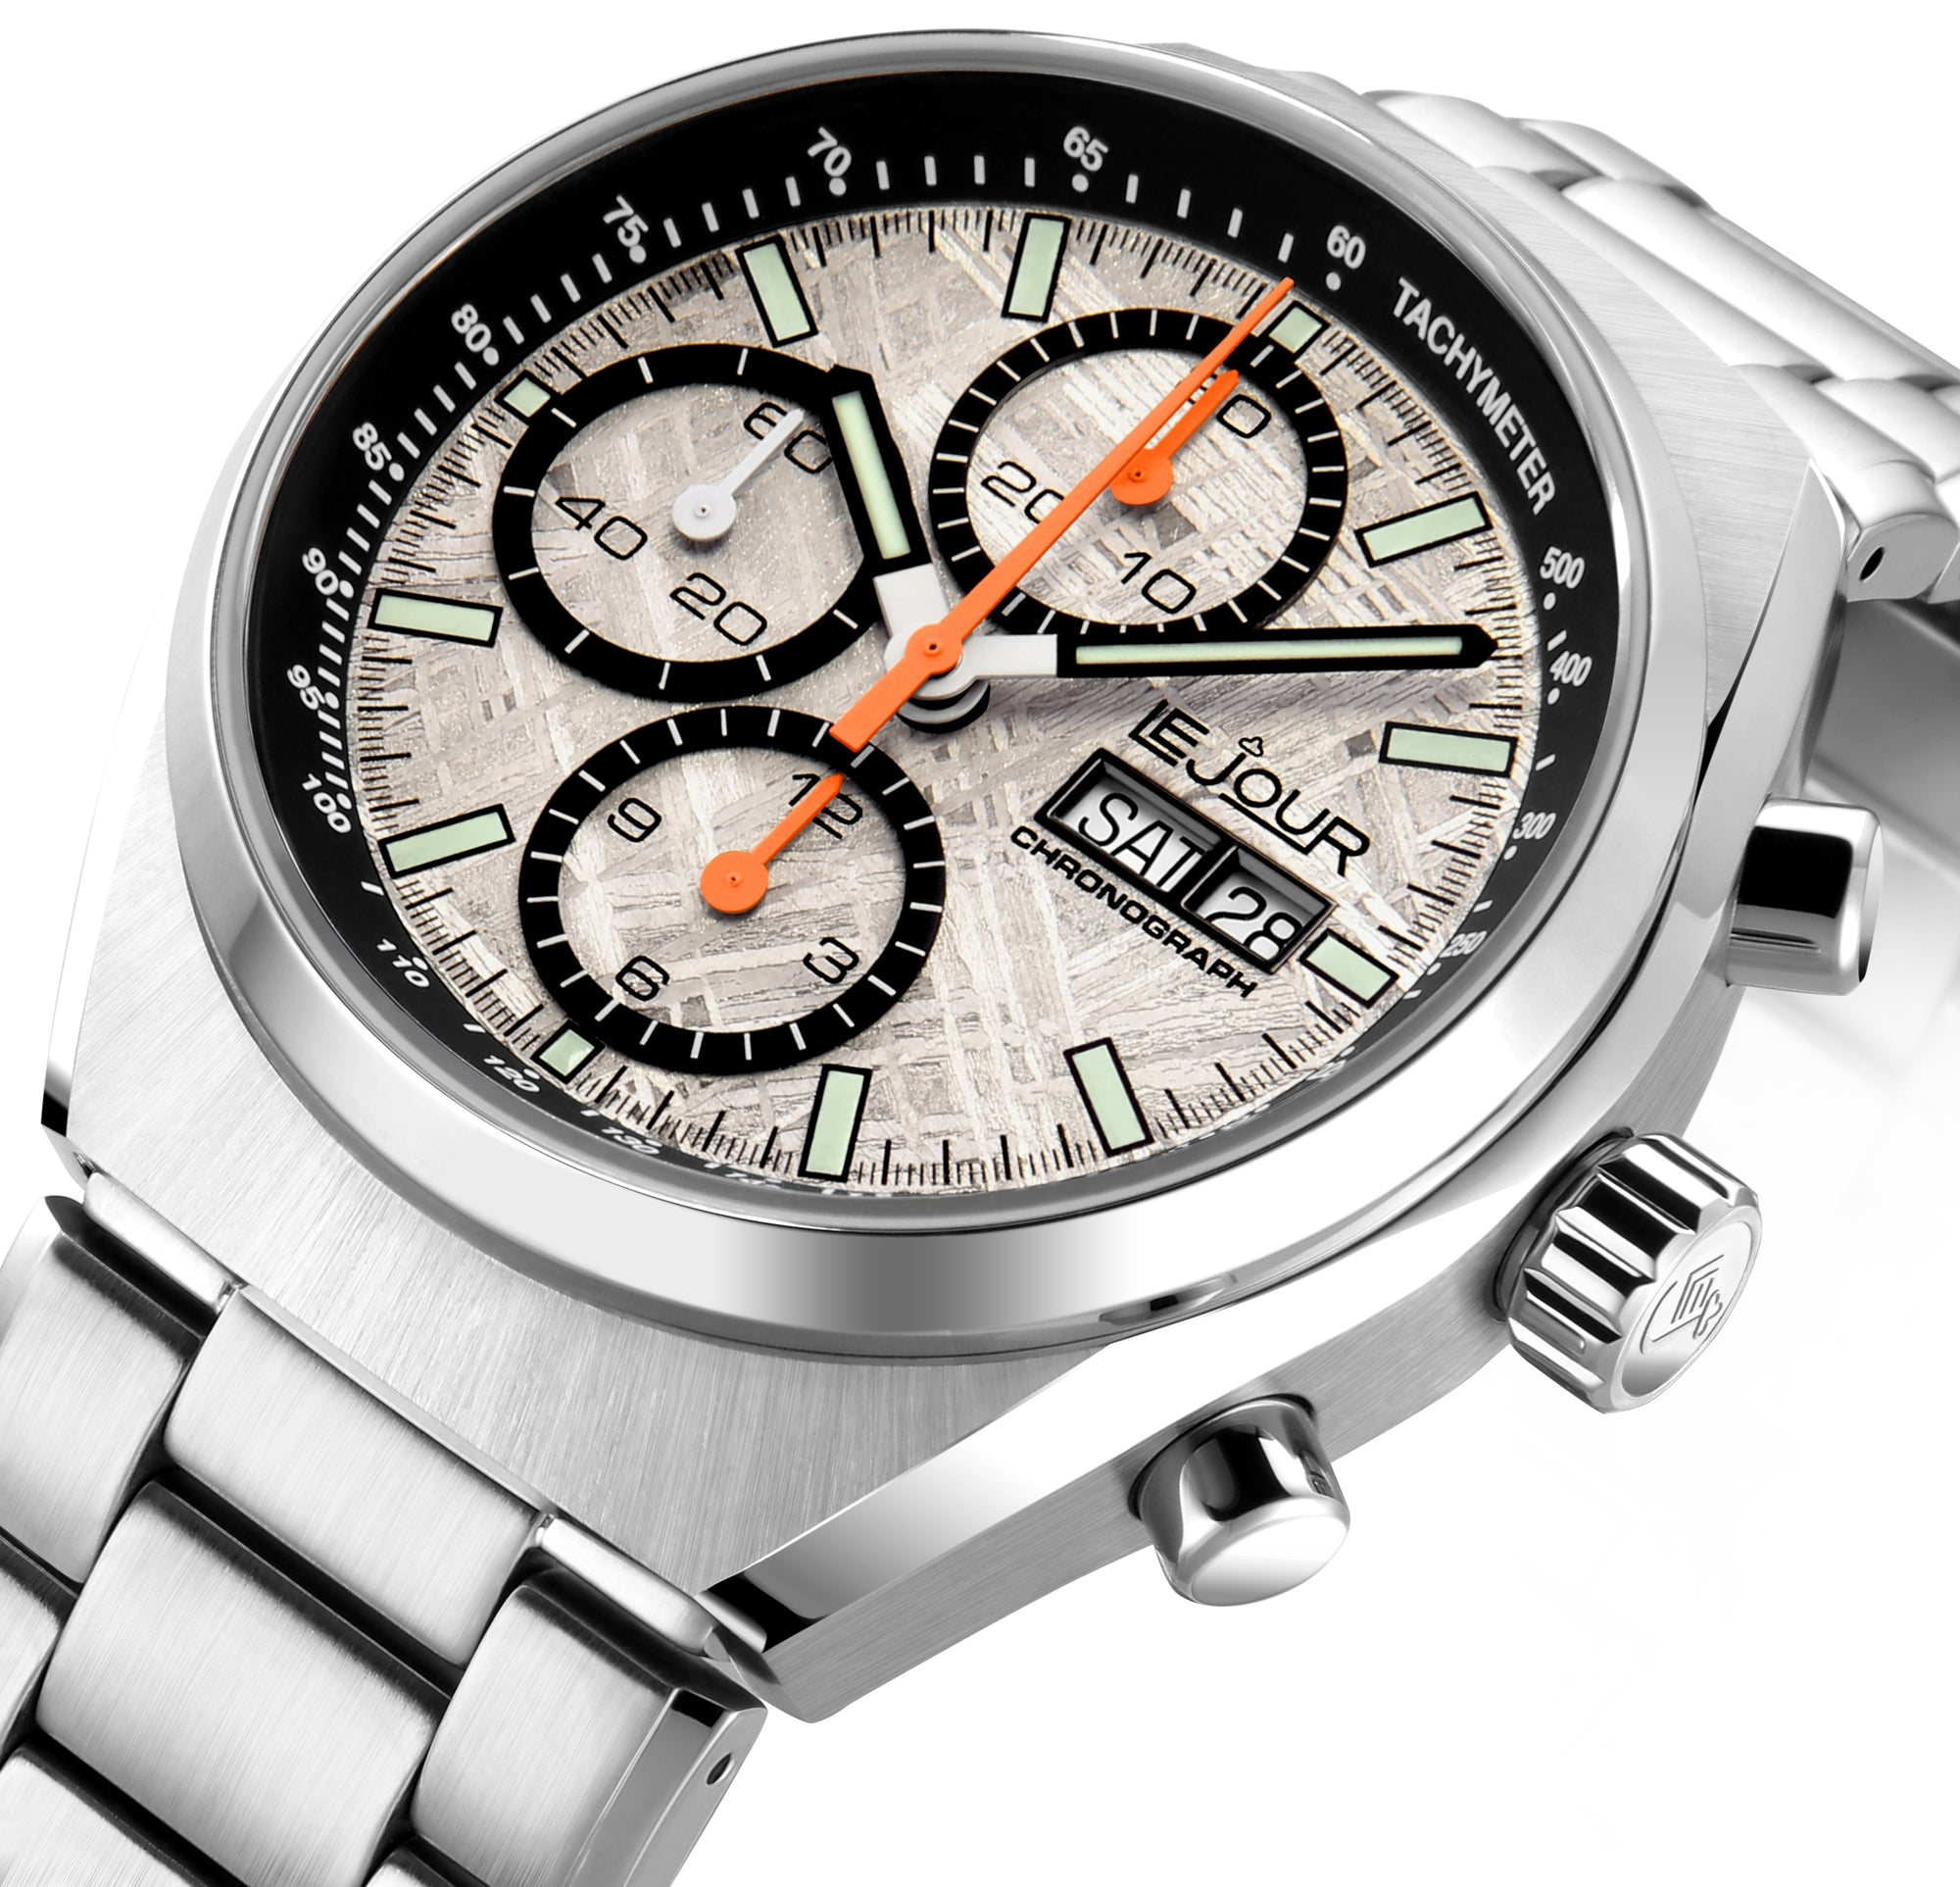 MARK I Chronograph